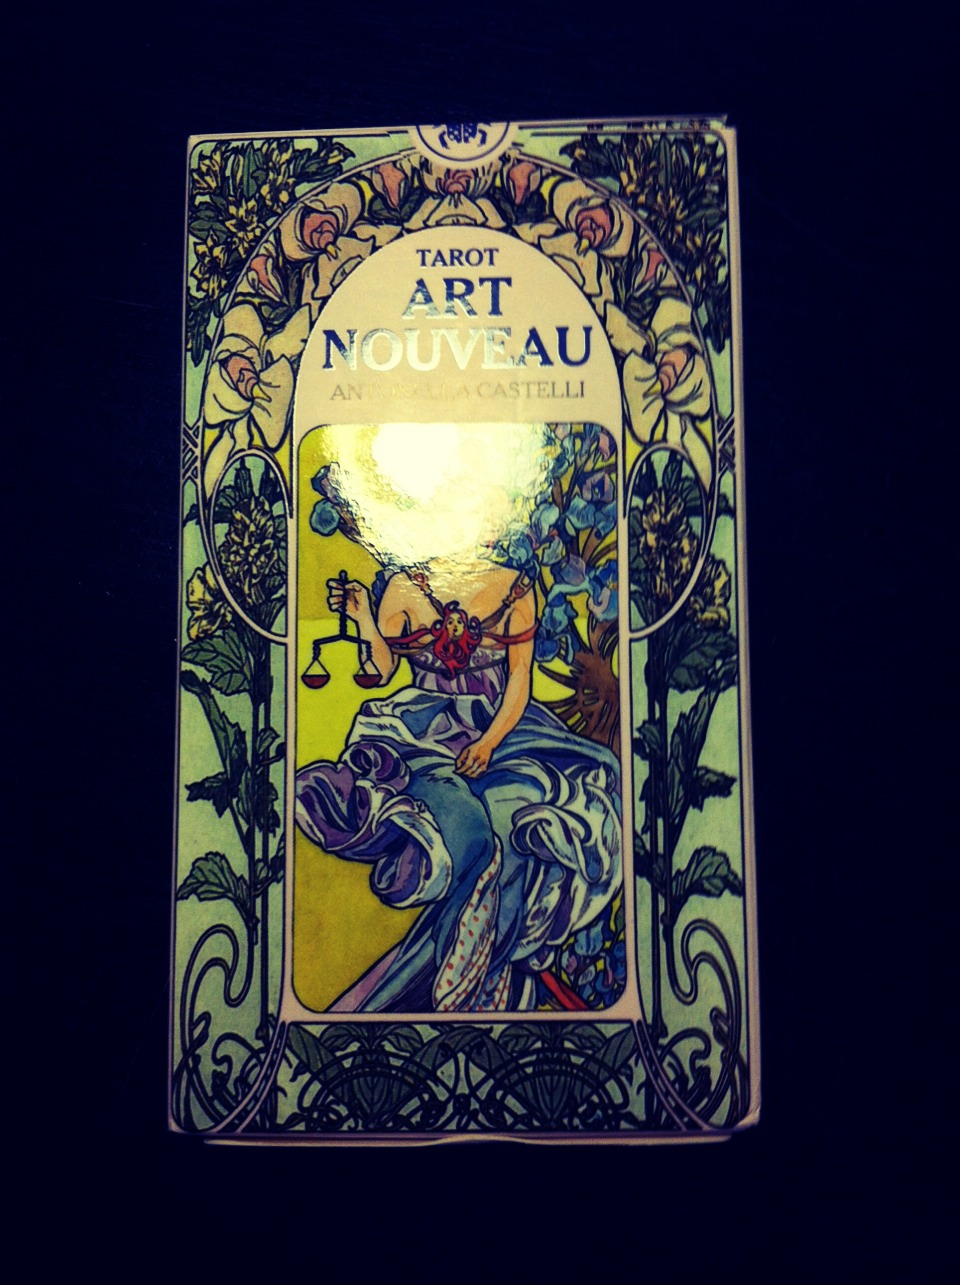 NOTE- There are many ways to read tarot cards and this is just one way.